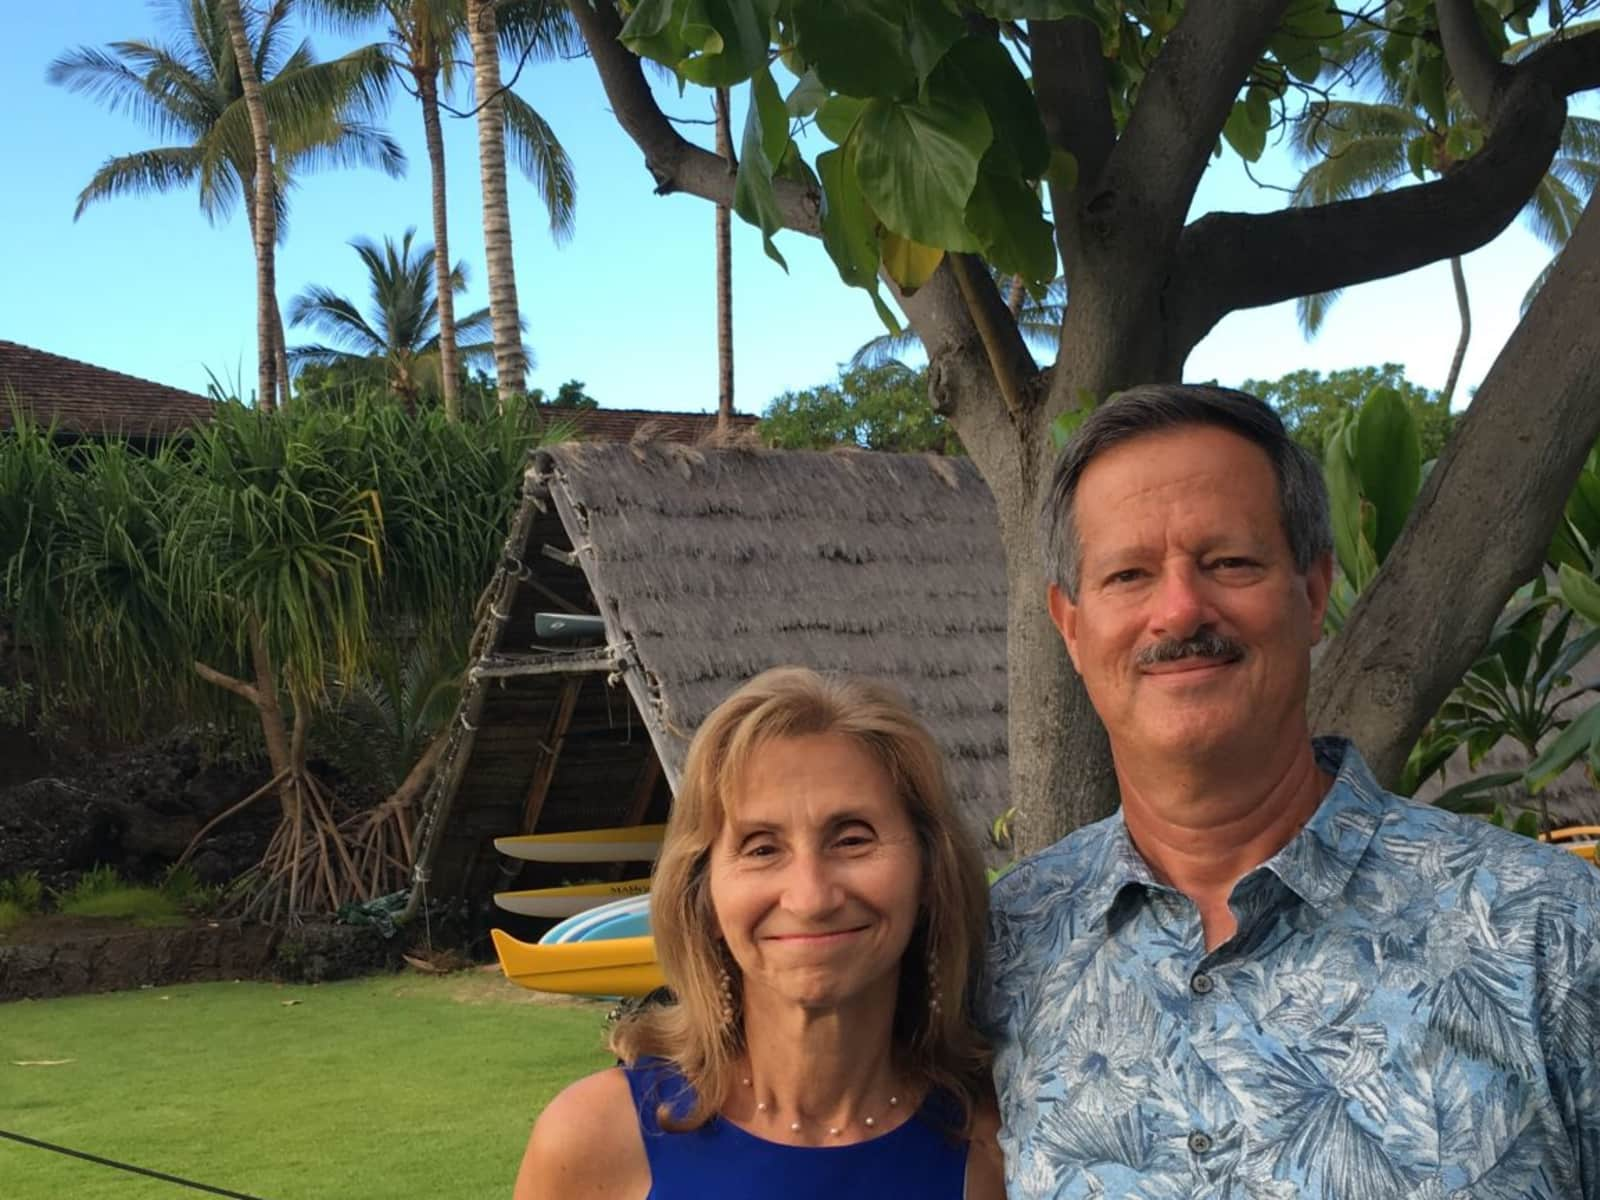 Marla & Michael from Honolulu, Hawaii, United States